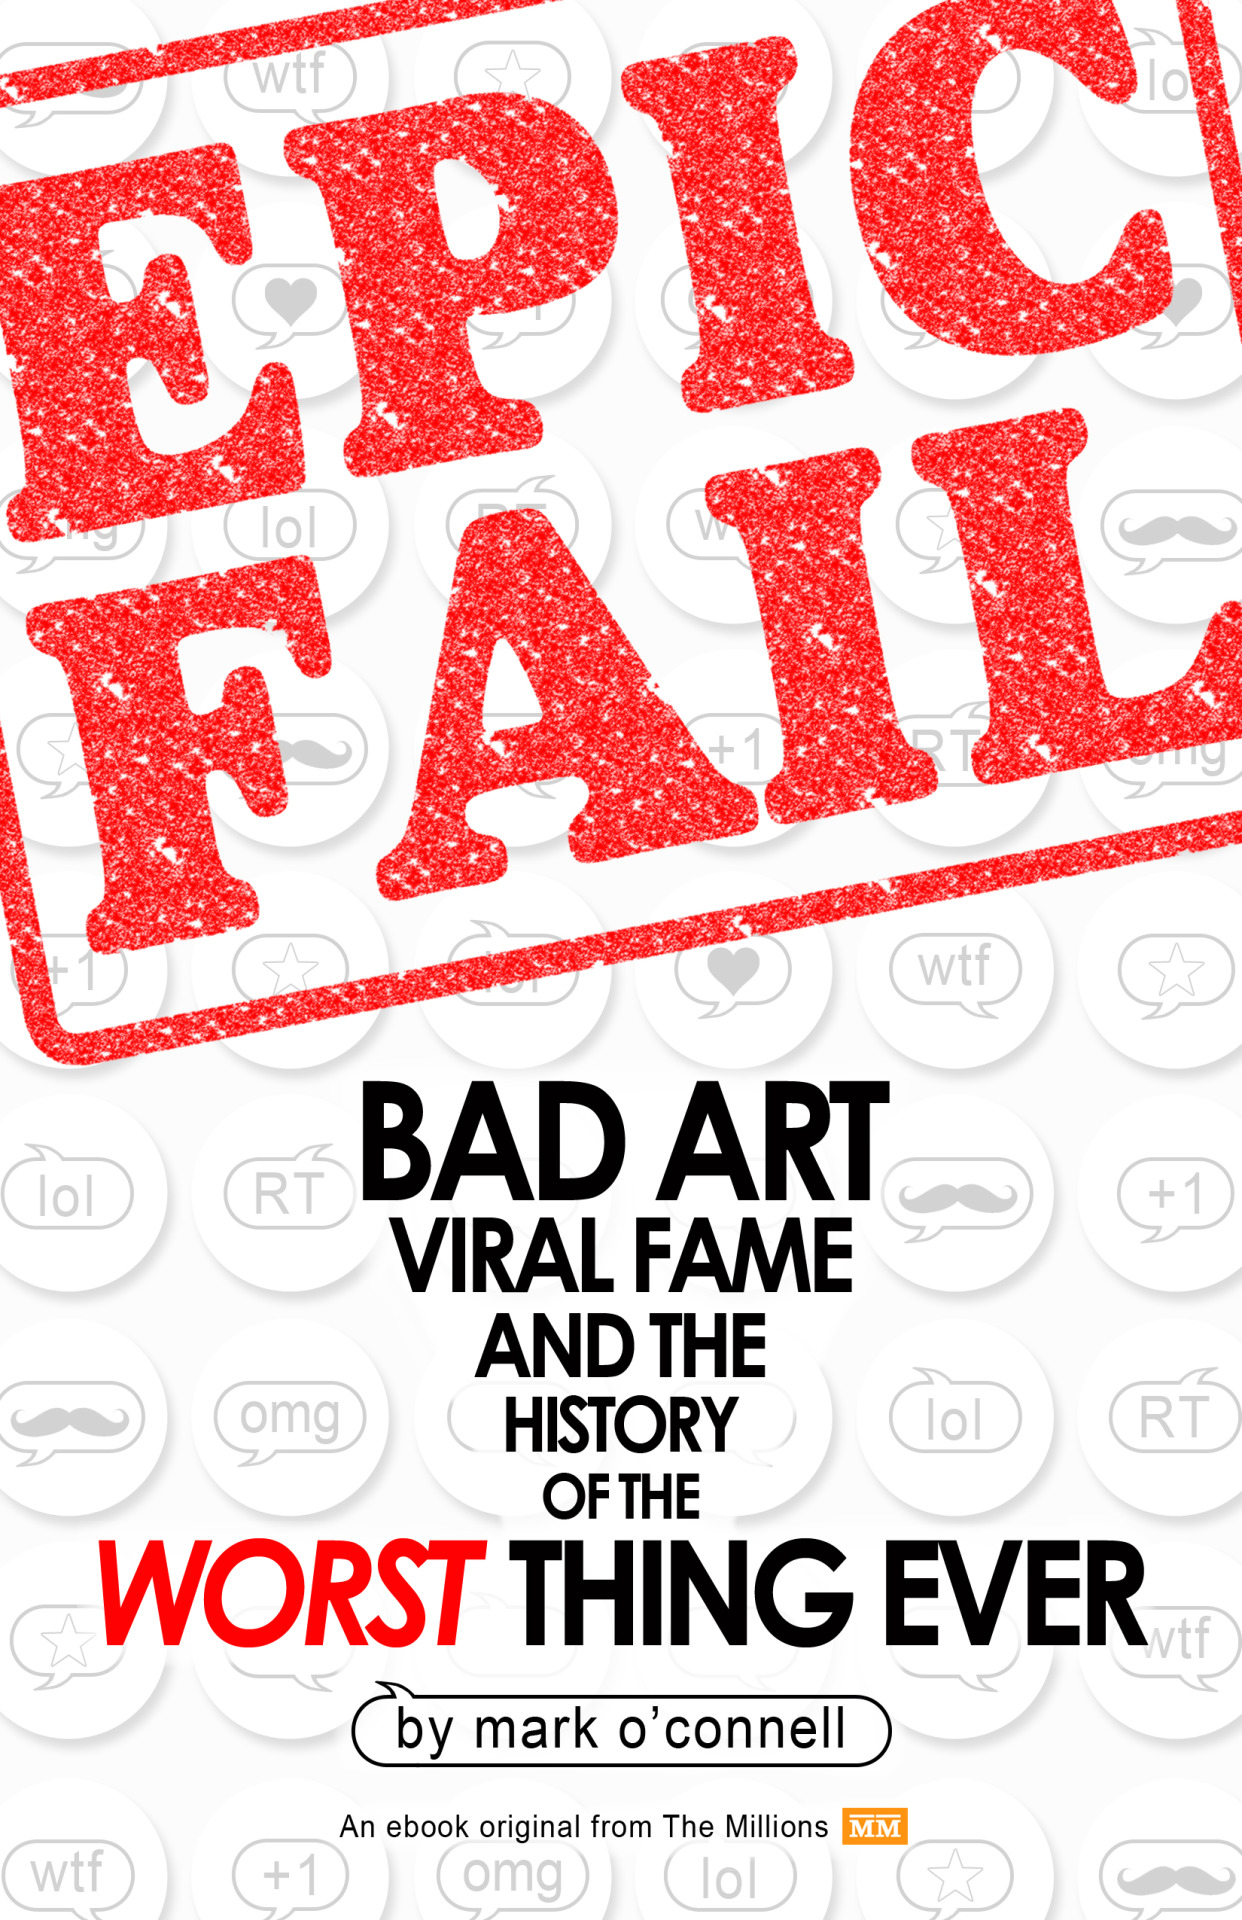 We're thrilled by the early buzz surrounding Epic Fail, our first Millions Original eBook. You can learn more about the project courtesy of The New York Times, The Los Angeles Times and Teleread. Of course, you could learn even more about the project by purchasing a copy of the book.